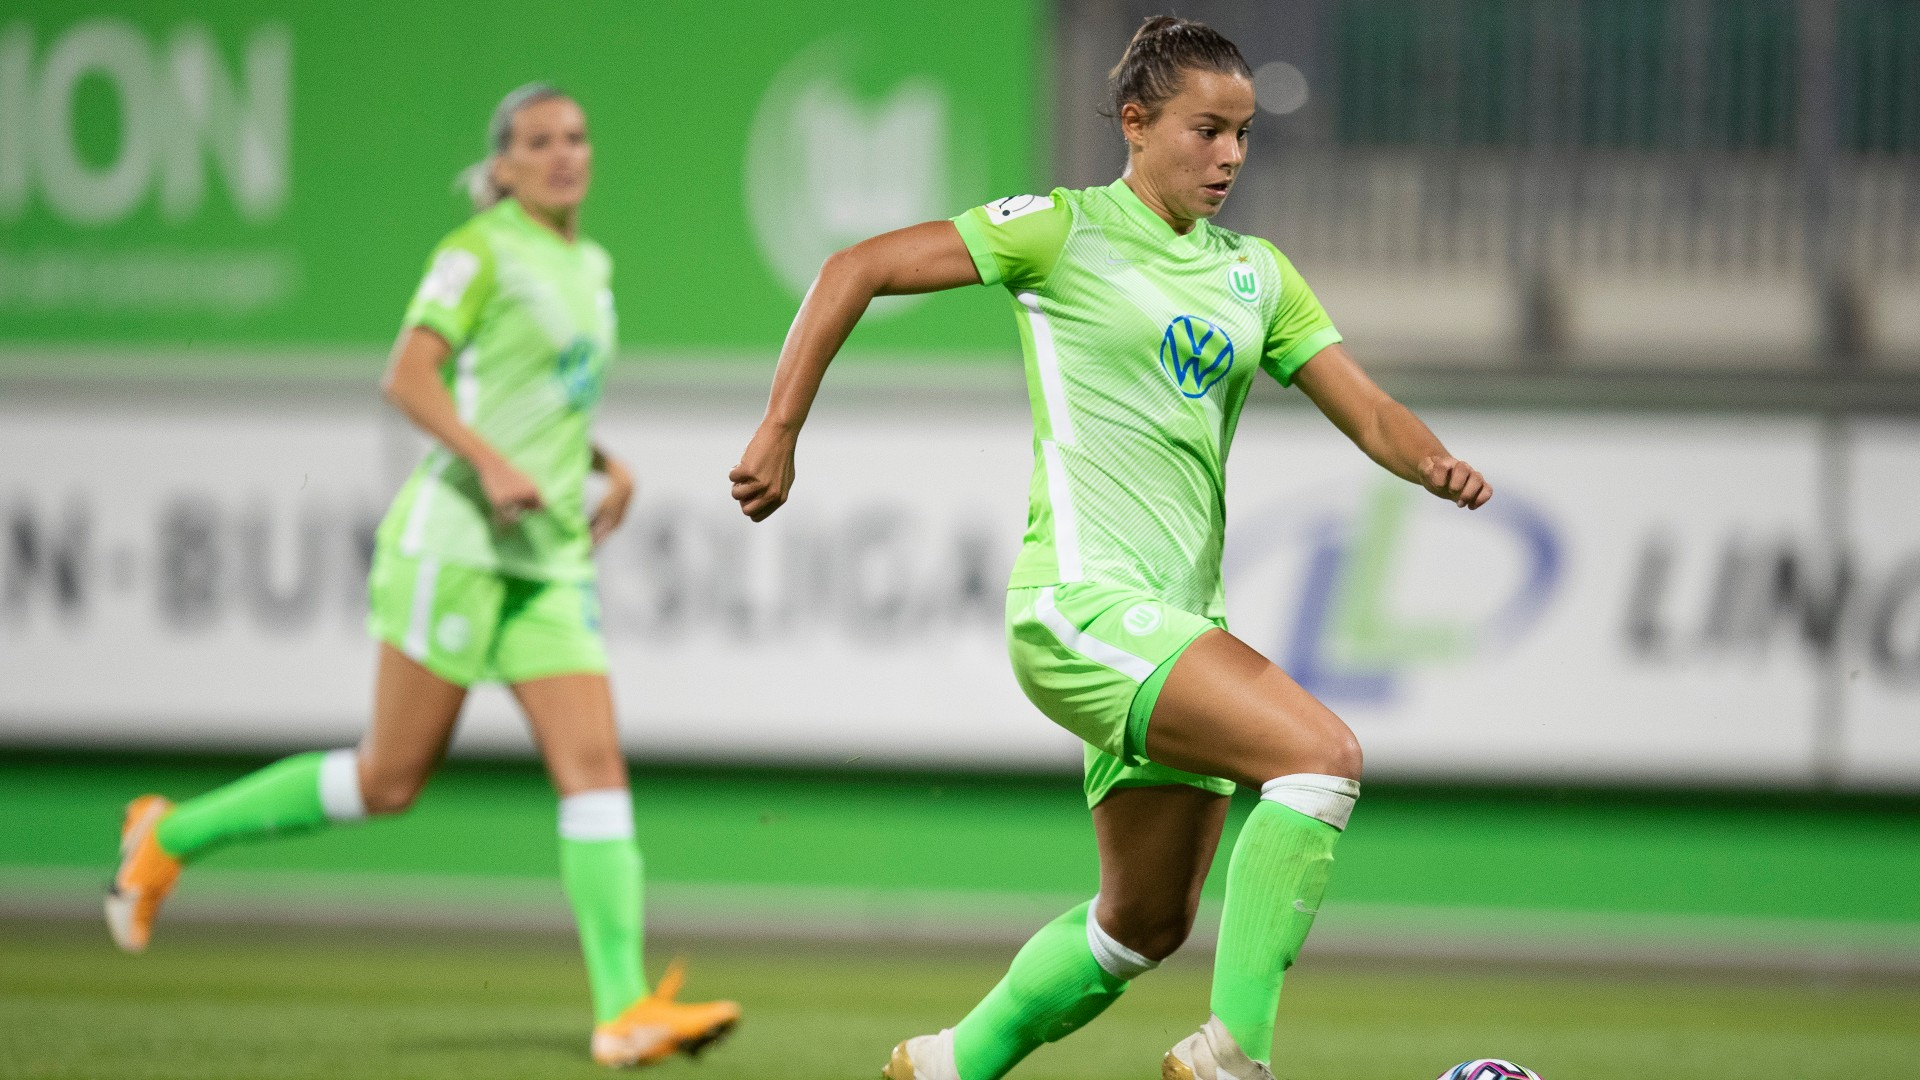 Oberdorf signs new contract with Wolfsburg until 2024